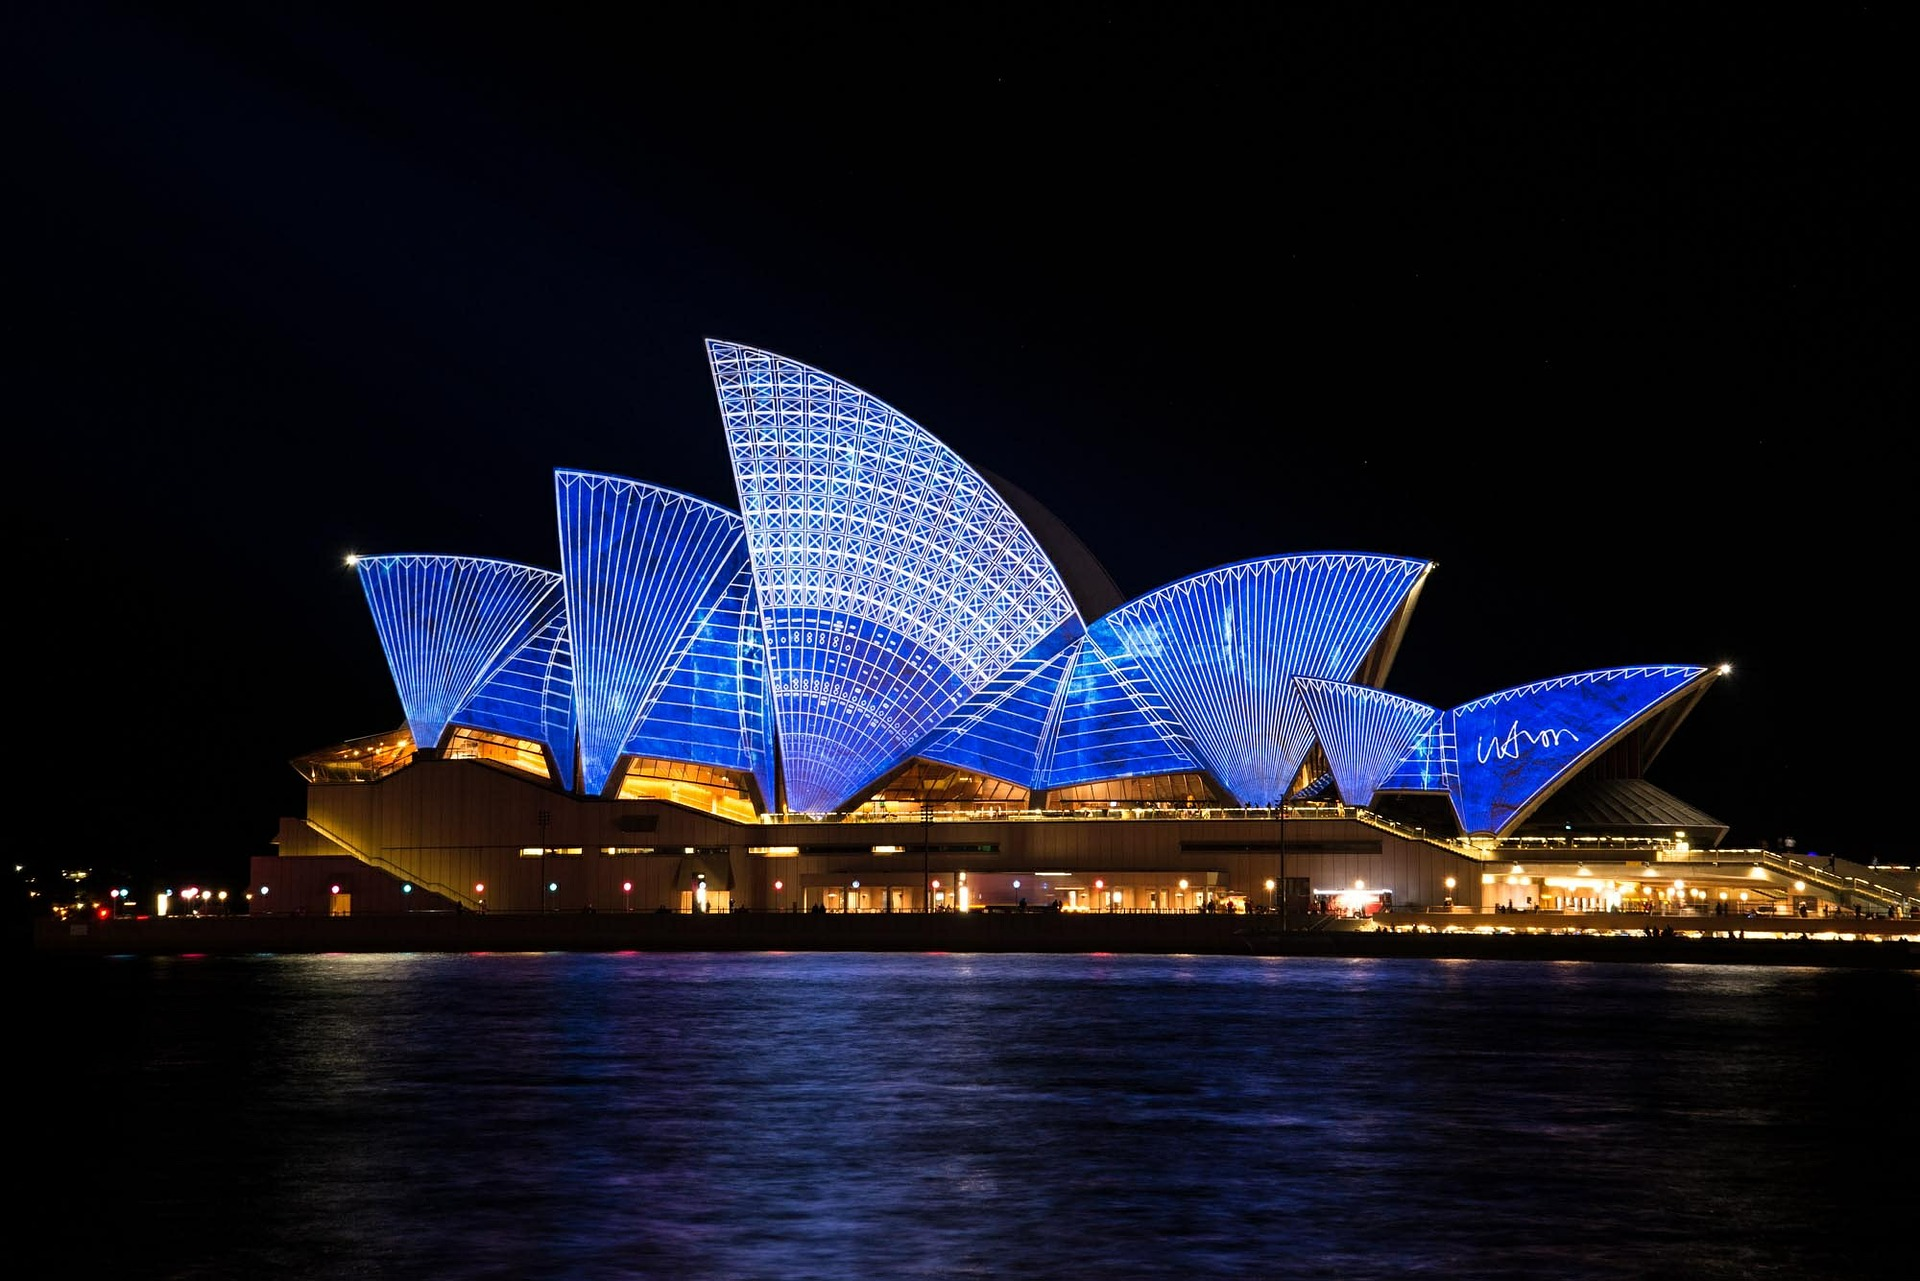 November in Sydney: The Top 10 Tech Events You Don't Want to Miss